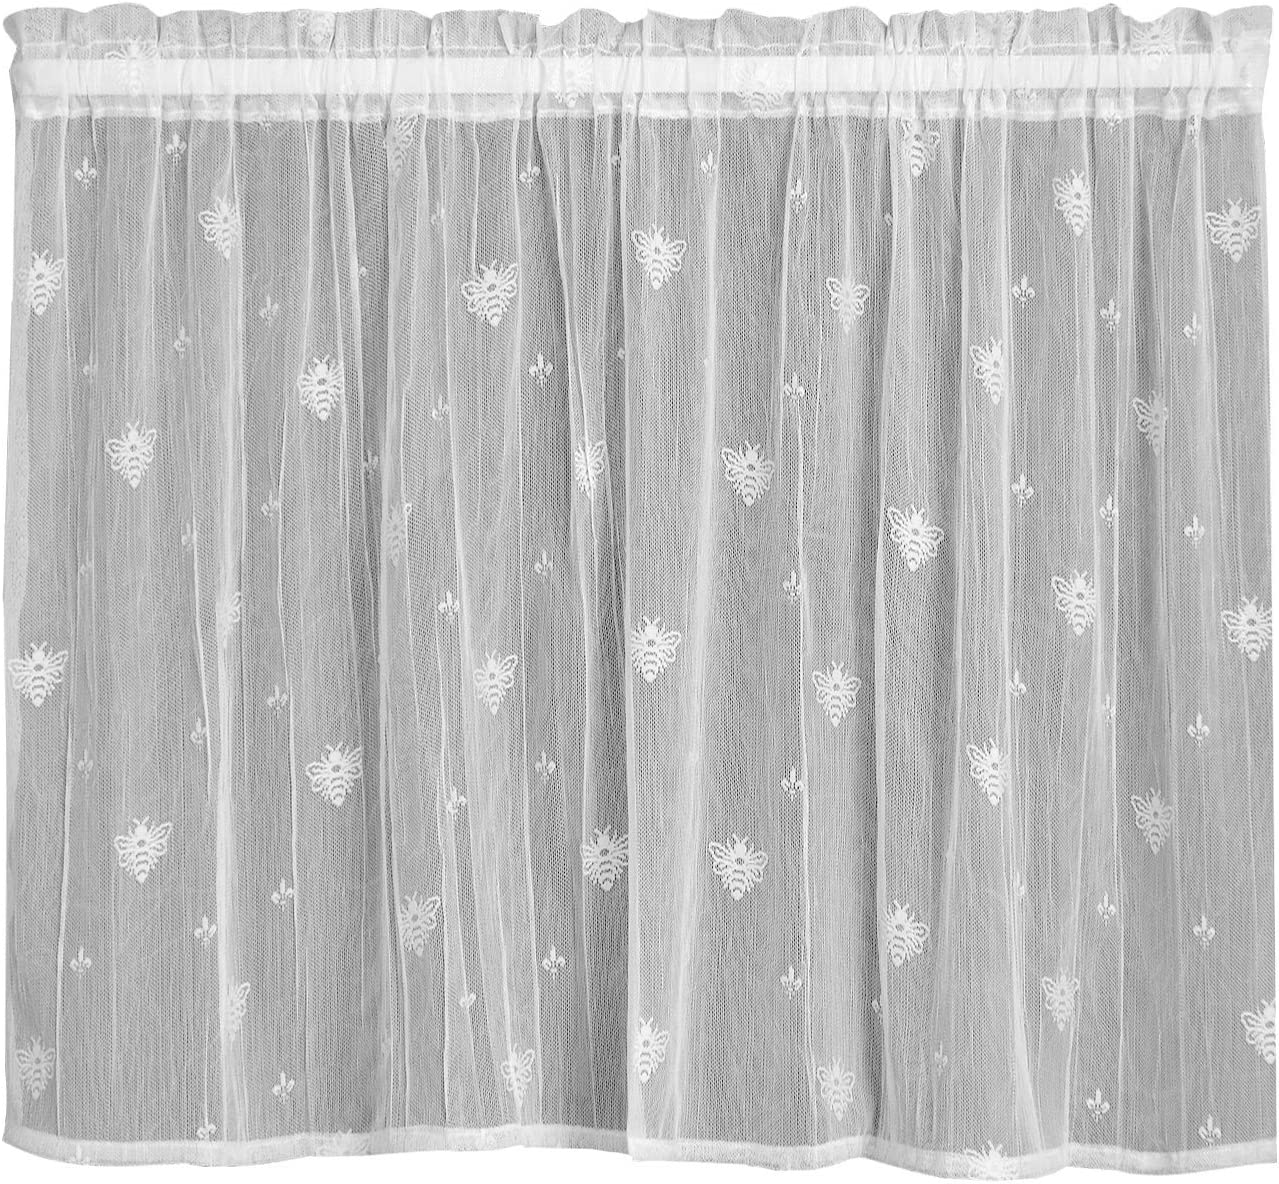 Heritage Lace Superior Bee Tier by 45 White 36-Inch 4 years warranty